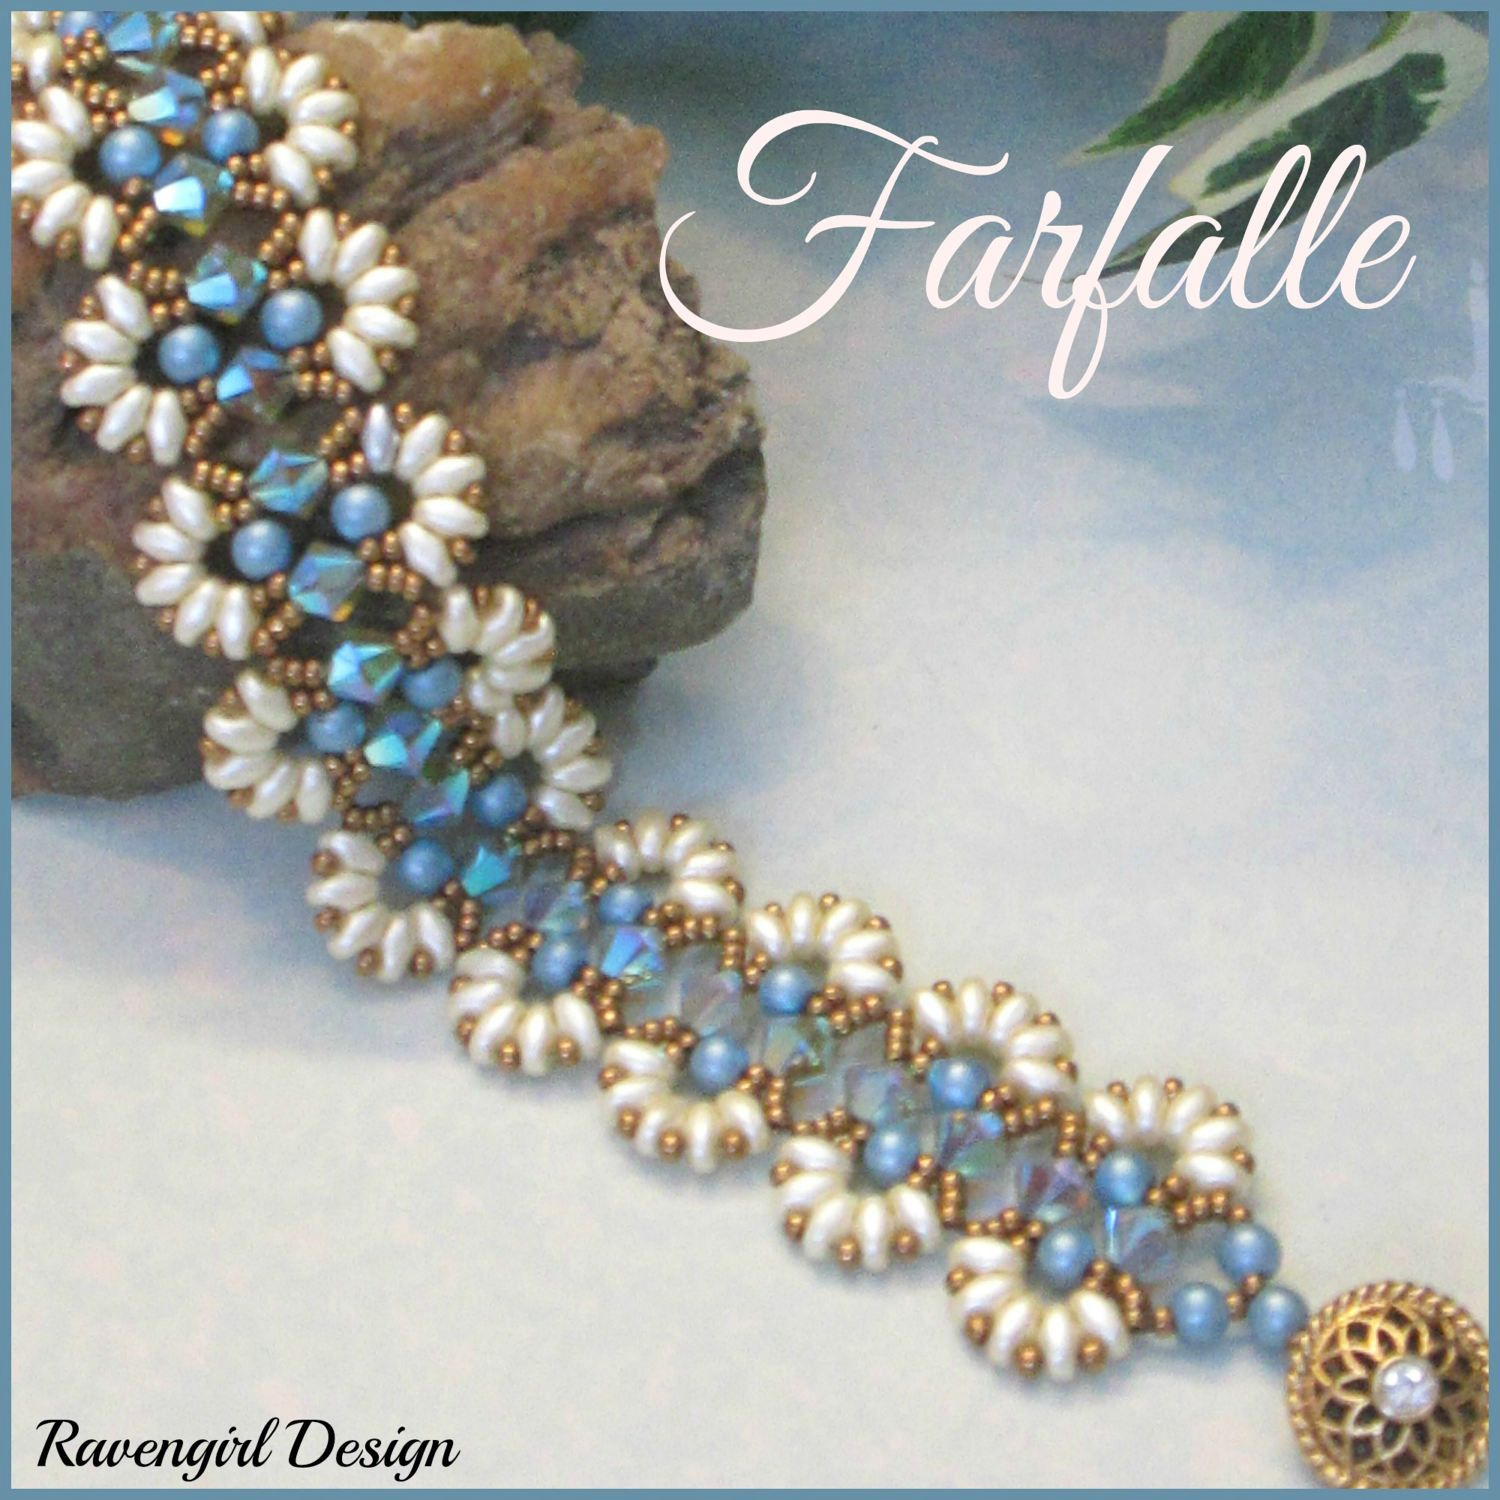 FARFALLE Beaded Swarovski Crystals, Pearls & Superduo Bracelet, Blue Cream, Gift for Her, Vintage Vctorian Style Handmade Jewelry by RavengirlDesign on Etsy